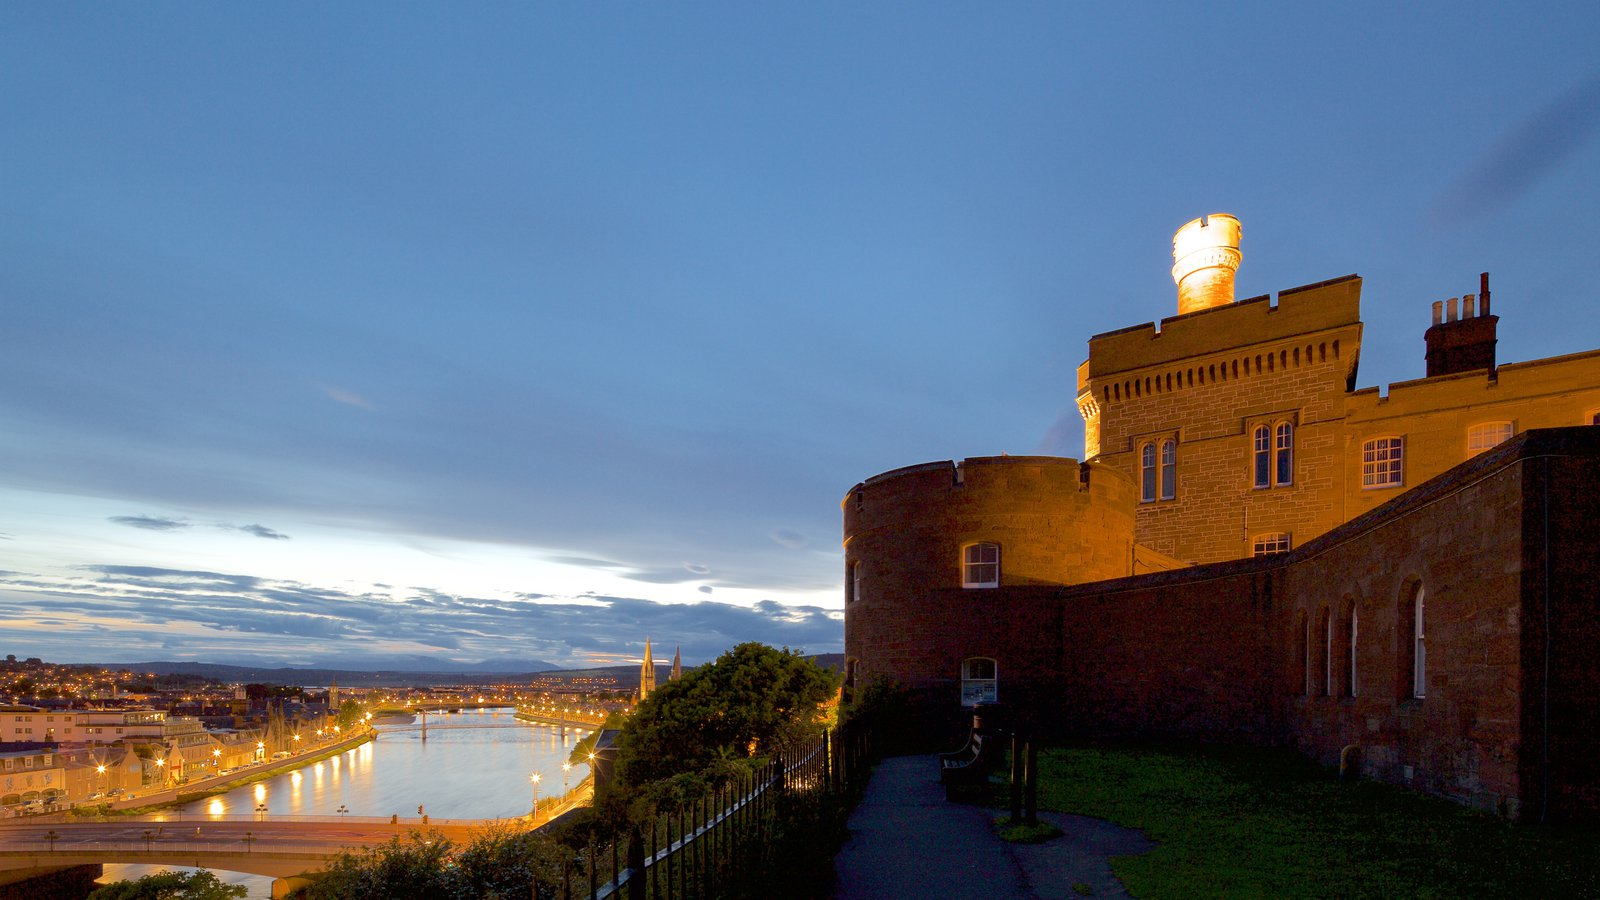 Inverness Castle showing heritage architecture, night scenes and heritage elements